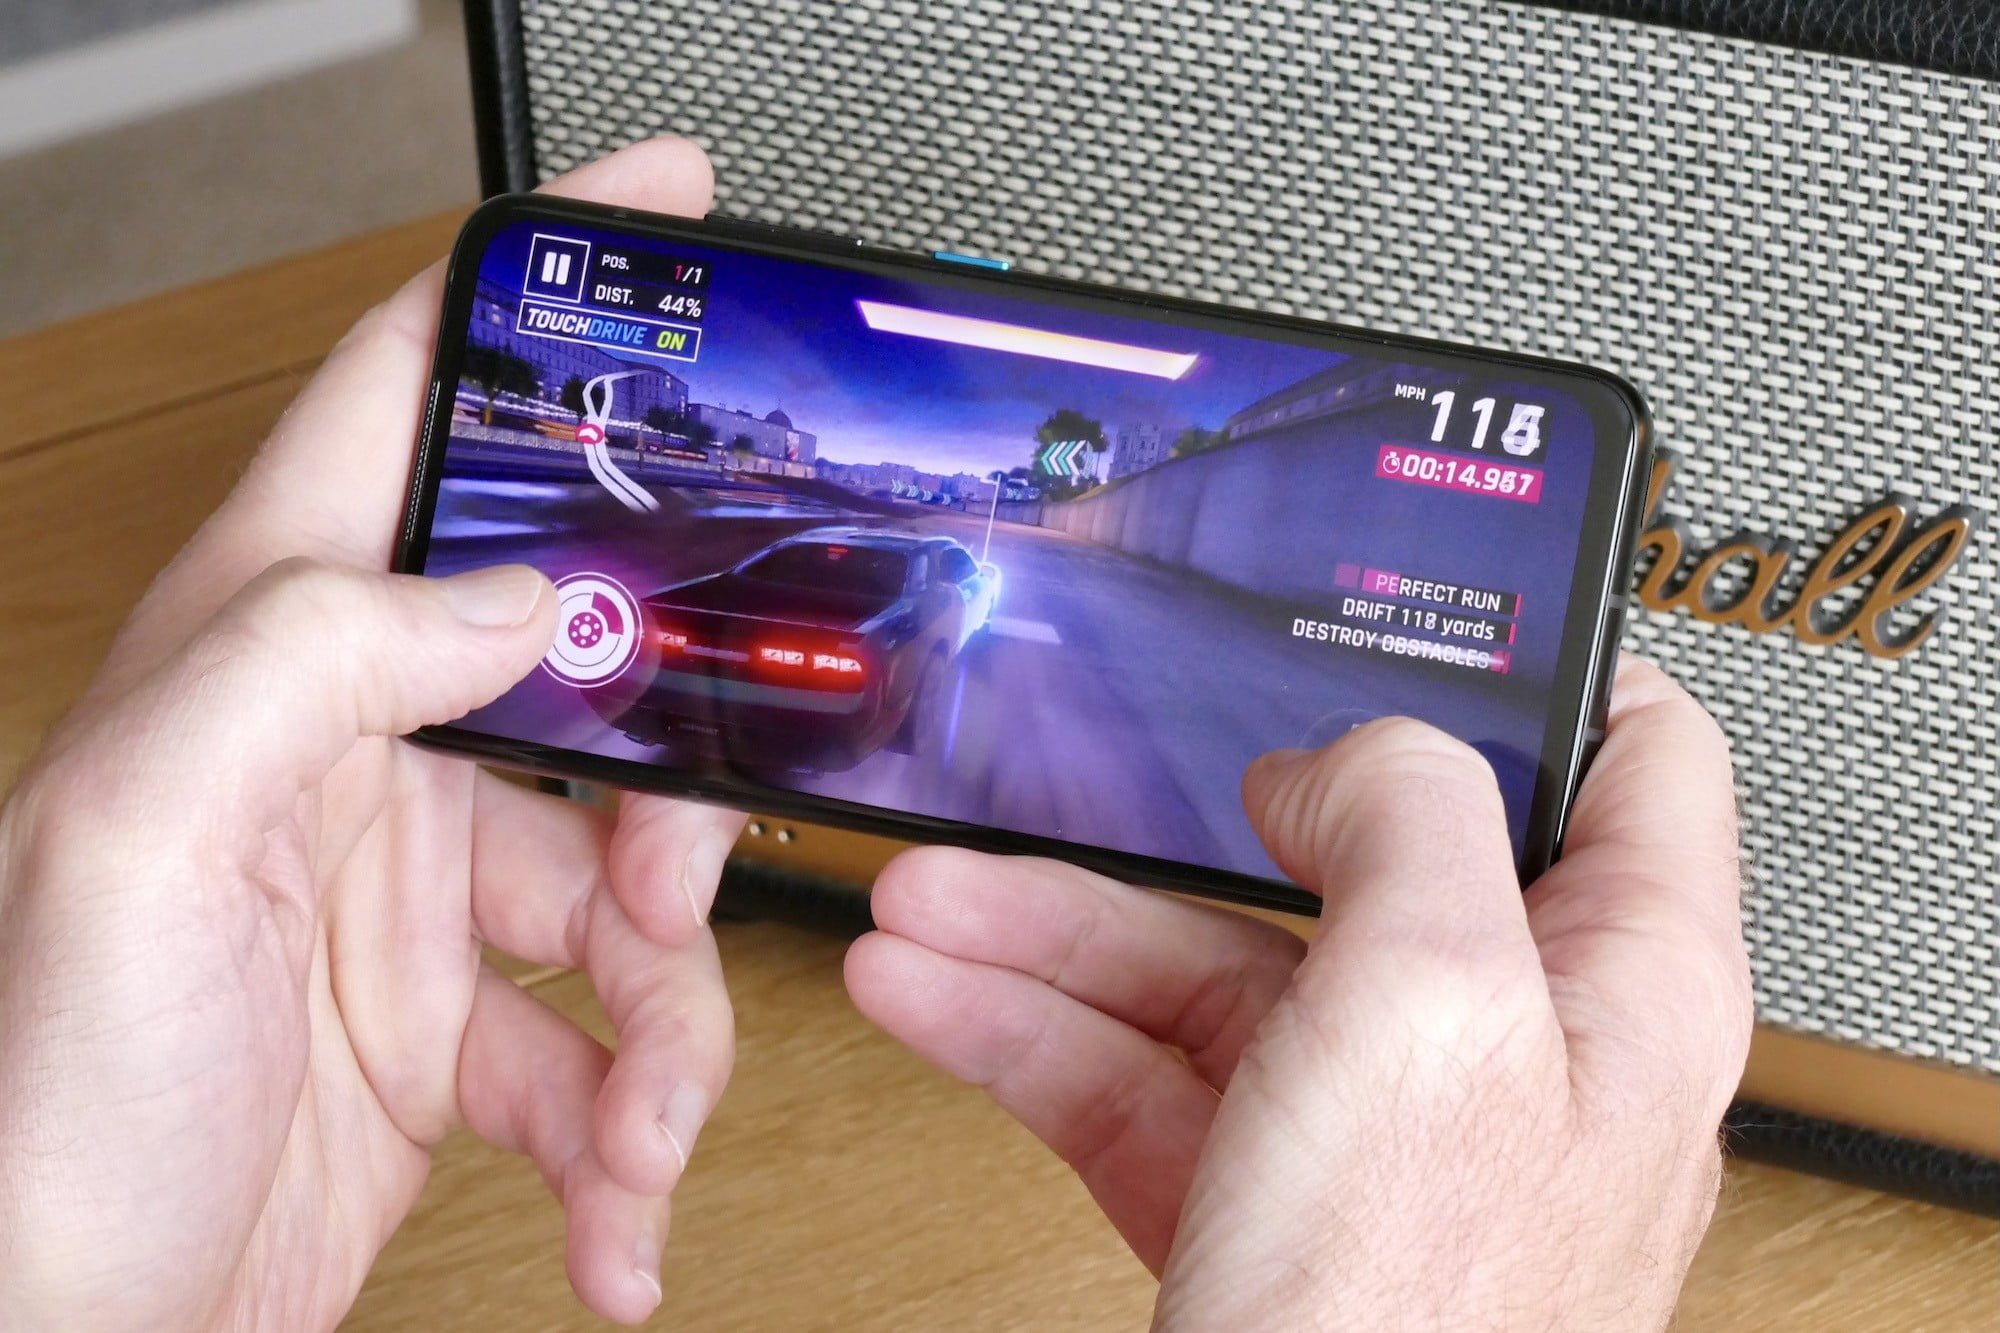 asus zenfone 8 review game